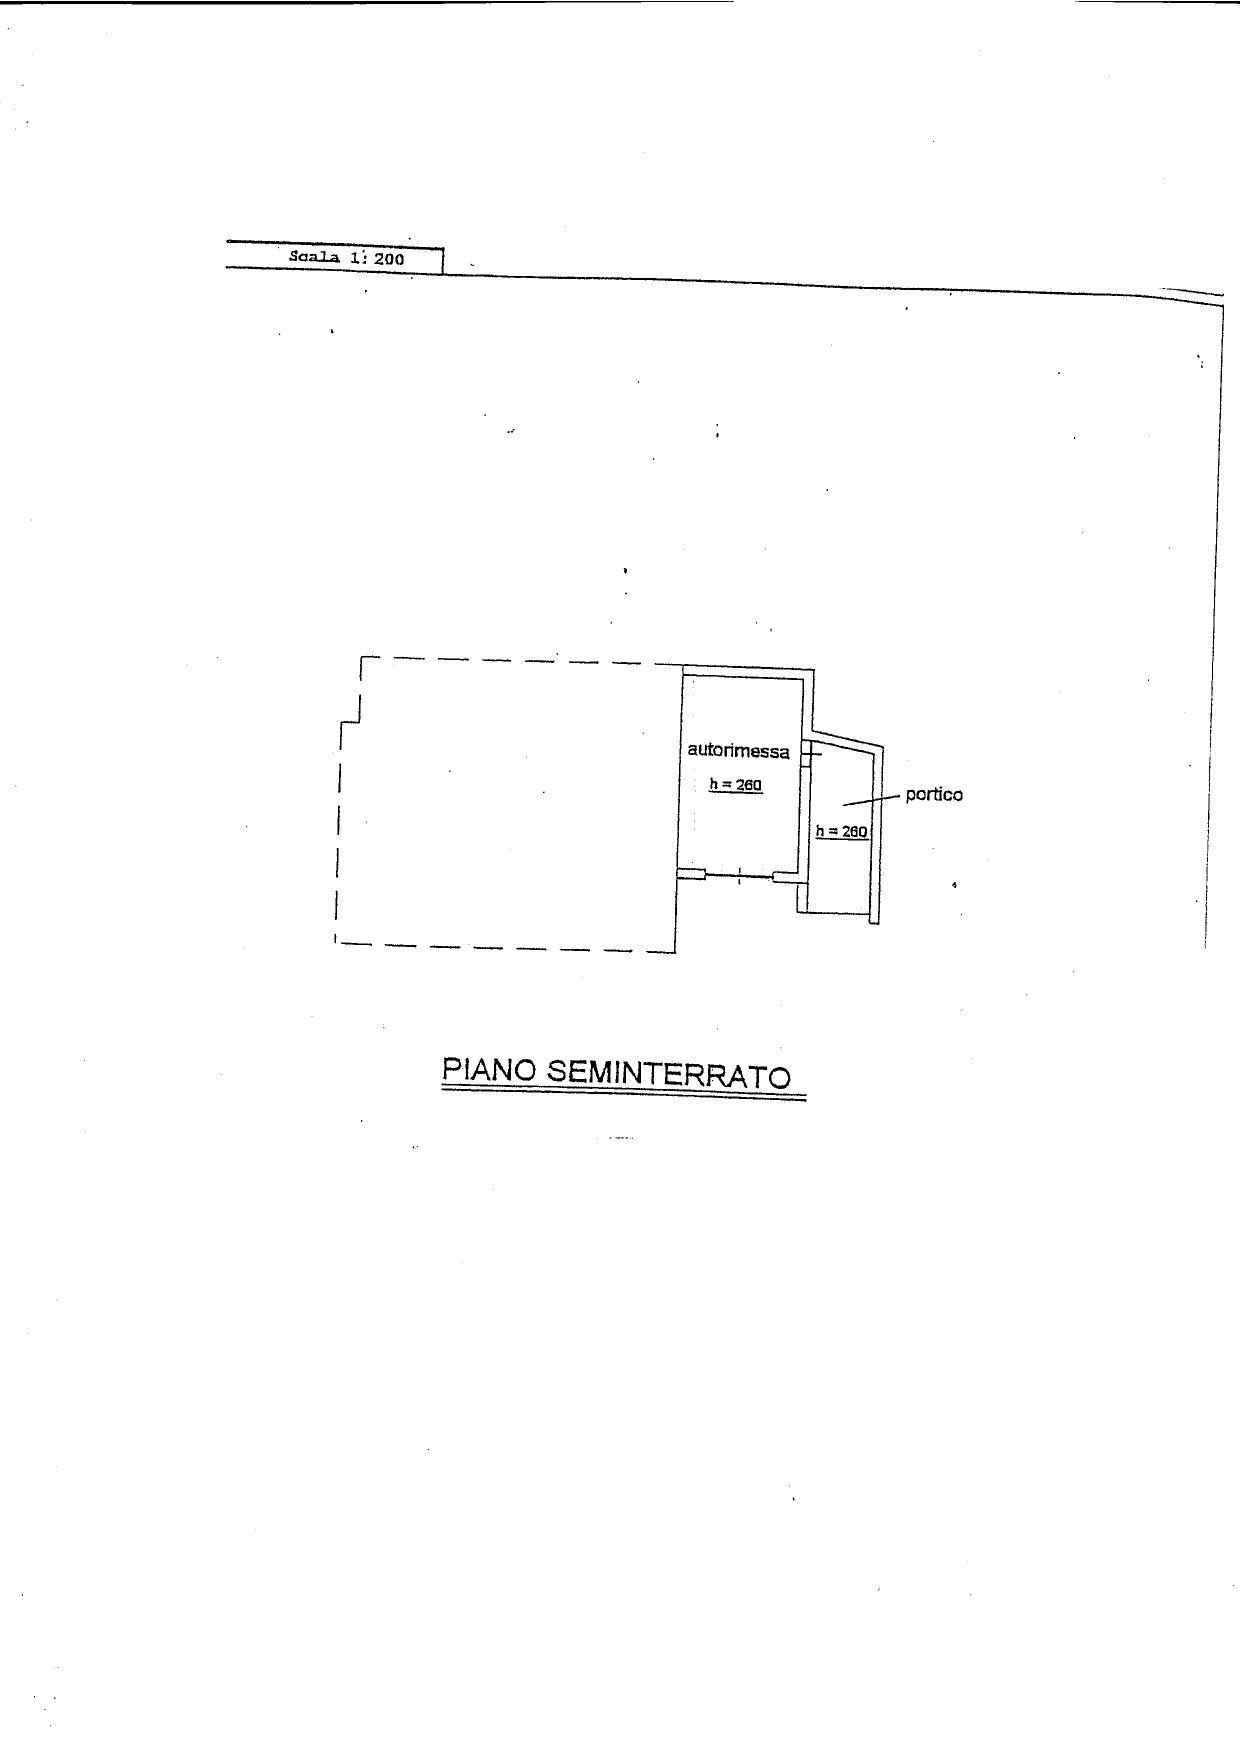 House for sale in Belgirate - garage floor plan